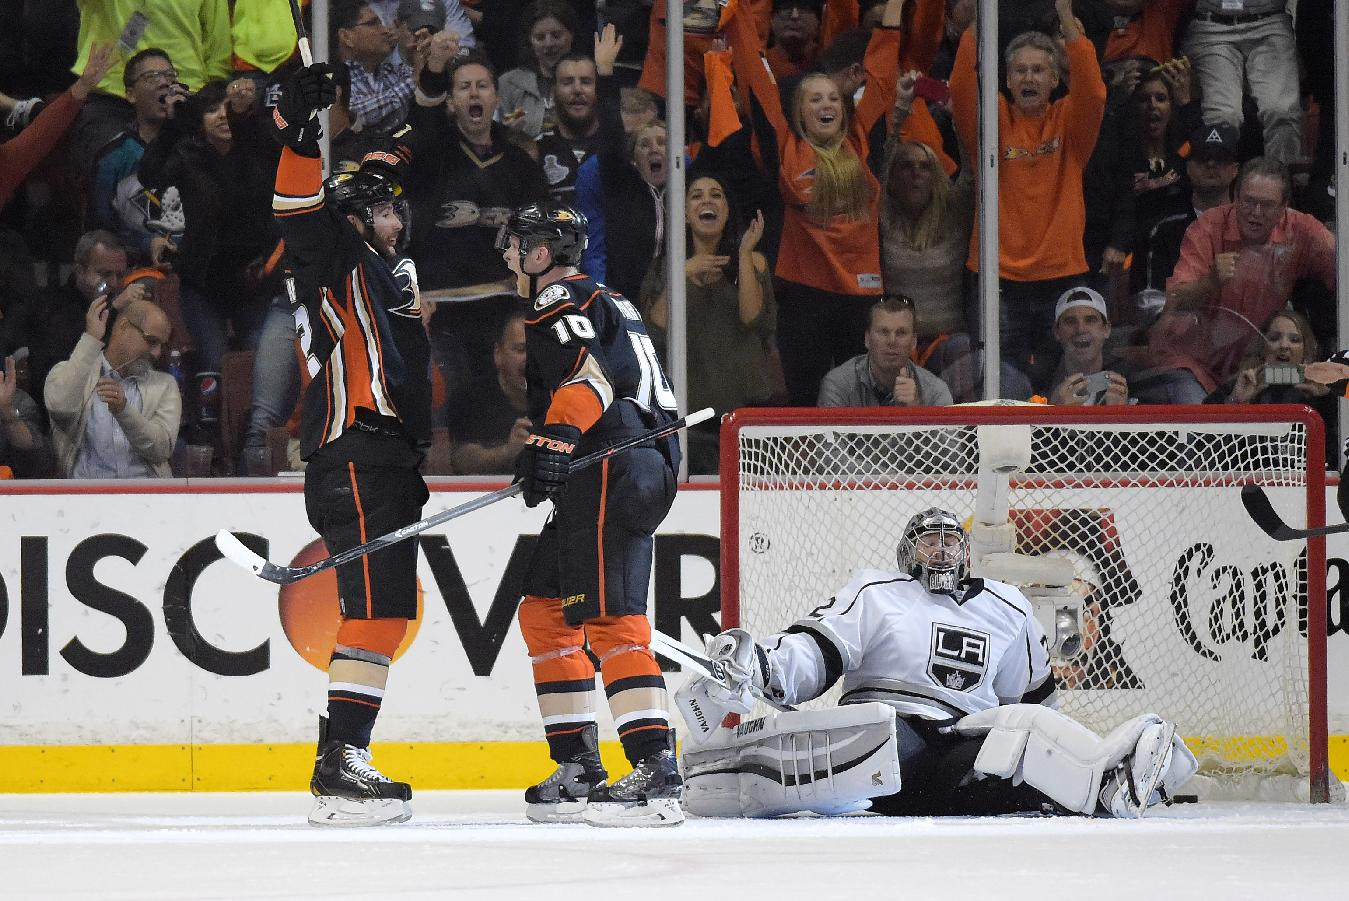 Anaheim Ducks left wing Patrick Maroon, left, celebrates his goal with teammate Corey Perry, center, as Los Angeles Kings goalie Jonathan Quick, right, looks on during the first period in Game 2 of an NHL hockey second-round Stanley Cup playoff series, Monday, May 5, 2014, in Anaheim, Calif